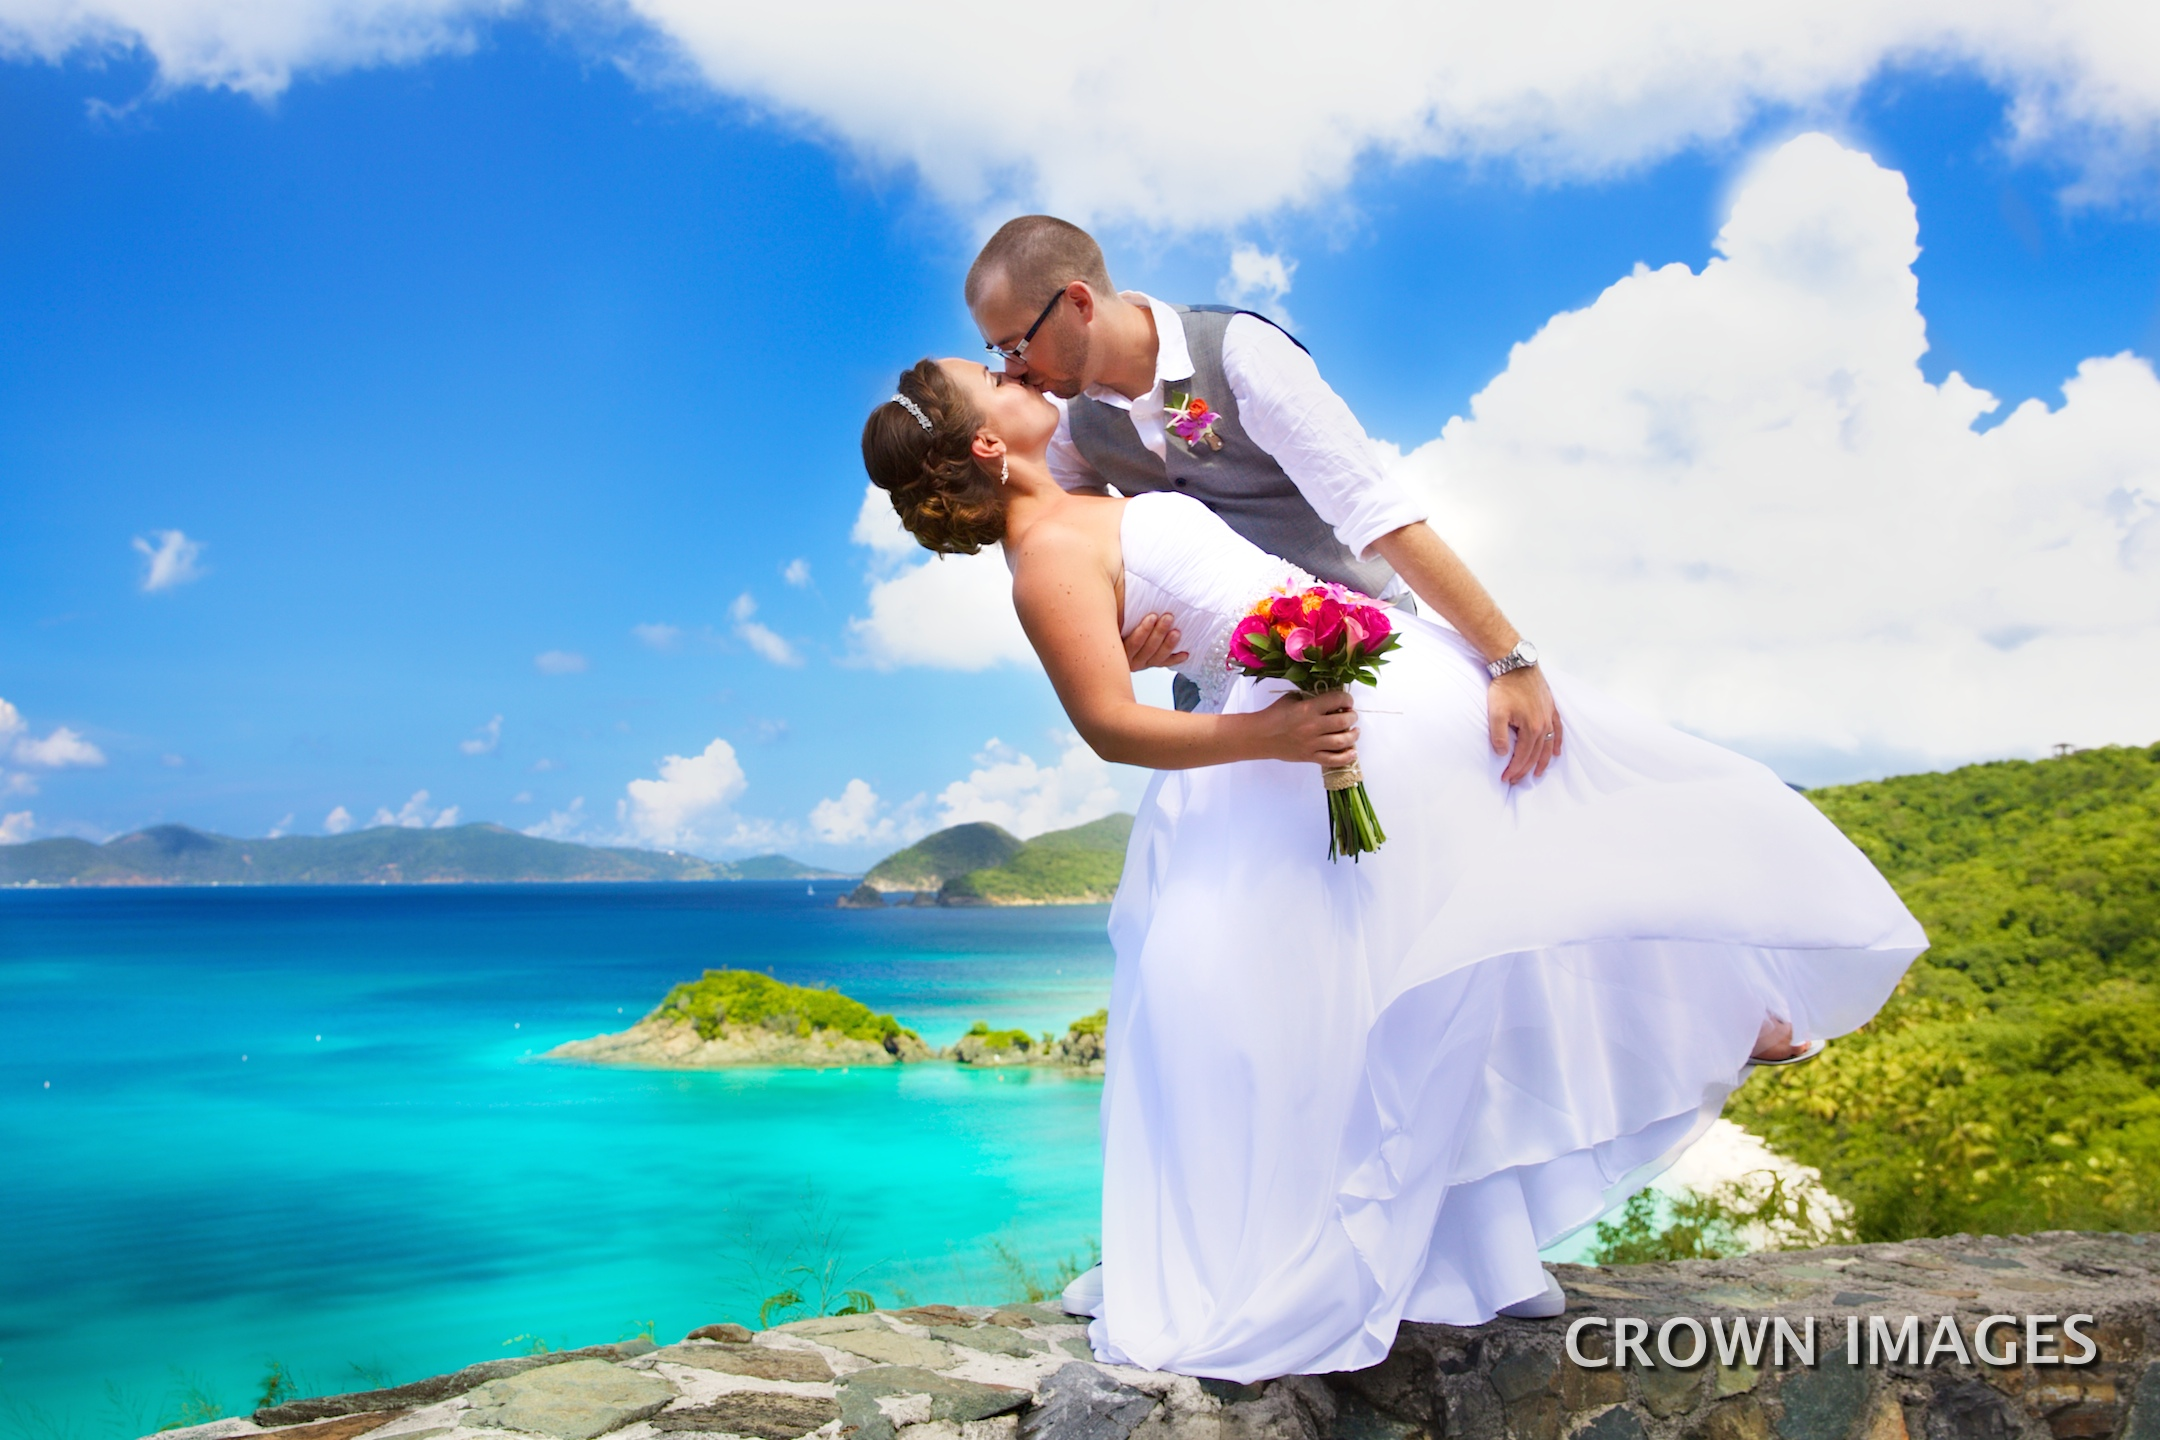 trunk bay overlook on st john for wedding photos by crown images